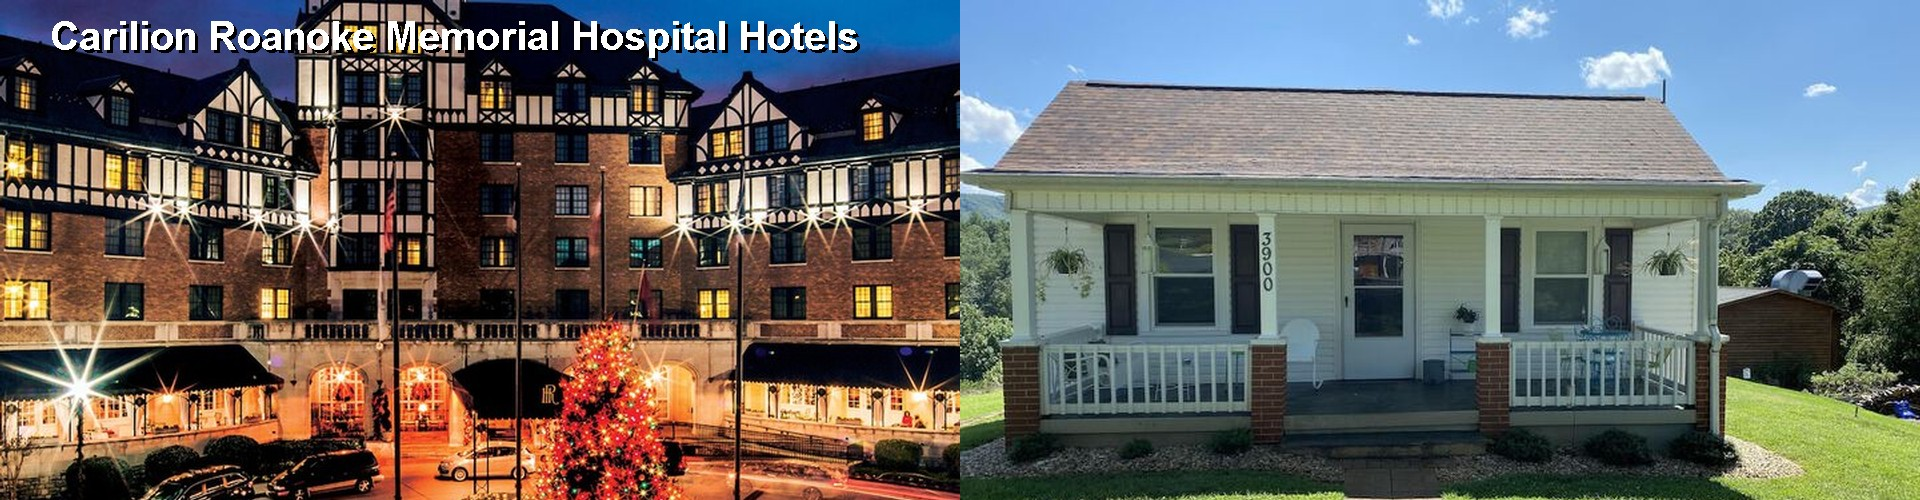 5 Best Hotels near Carilion Roanoke Memorial Hospital